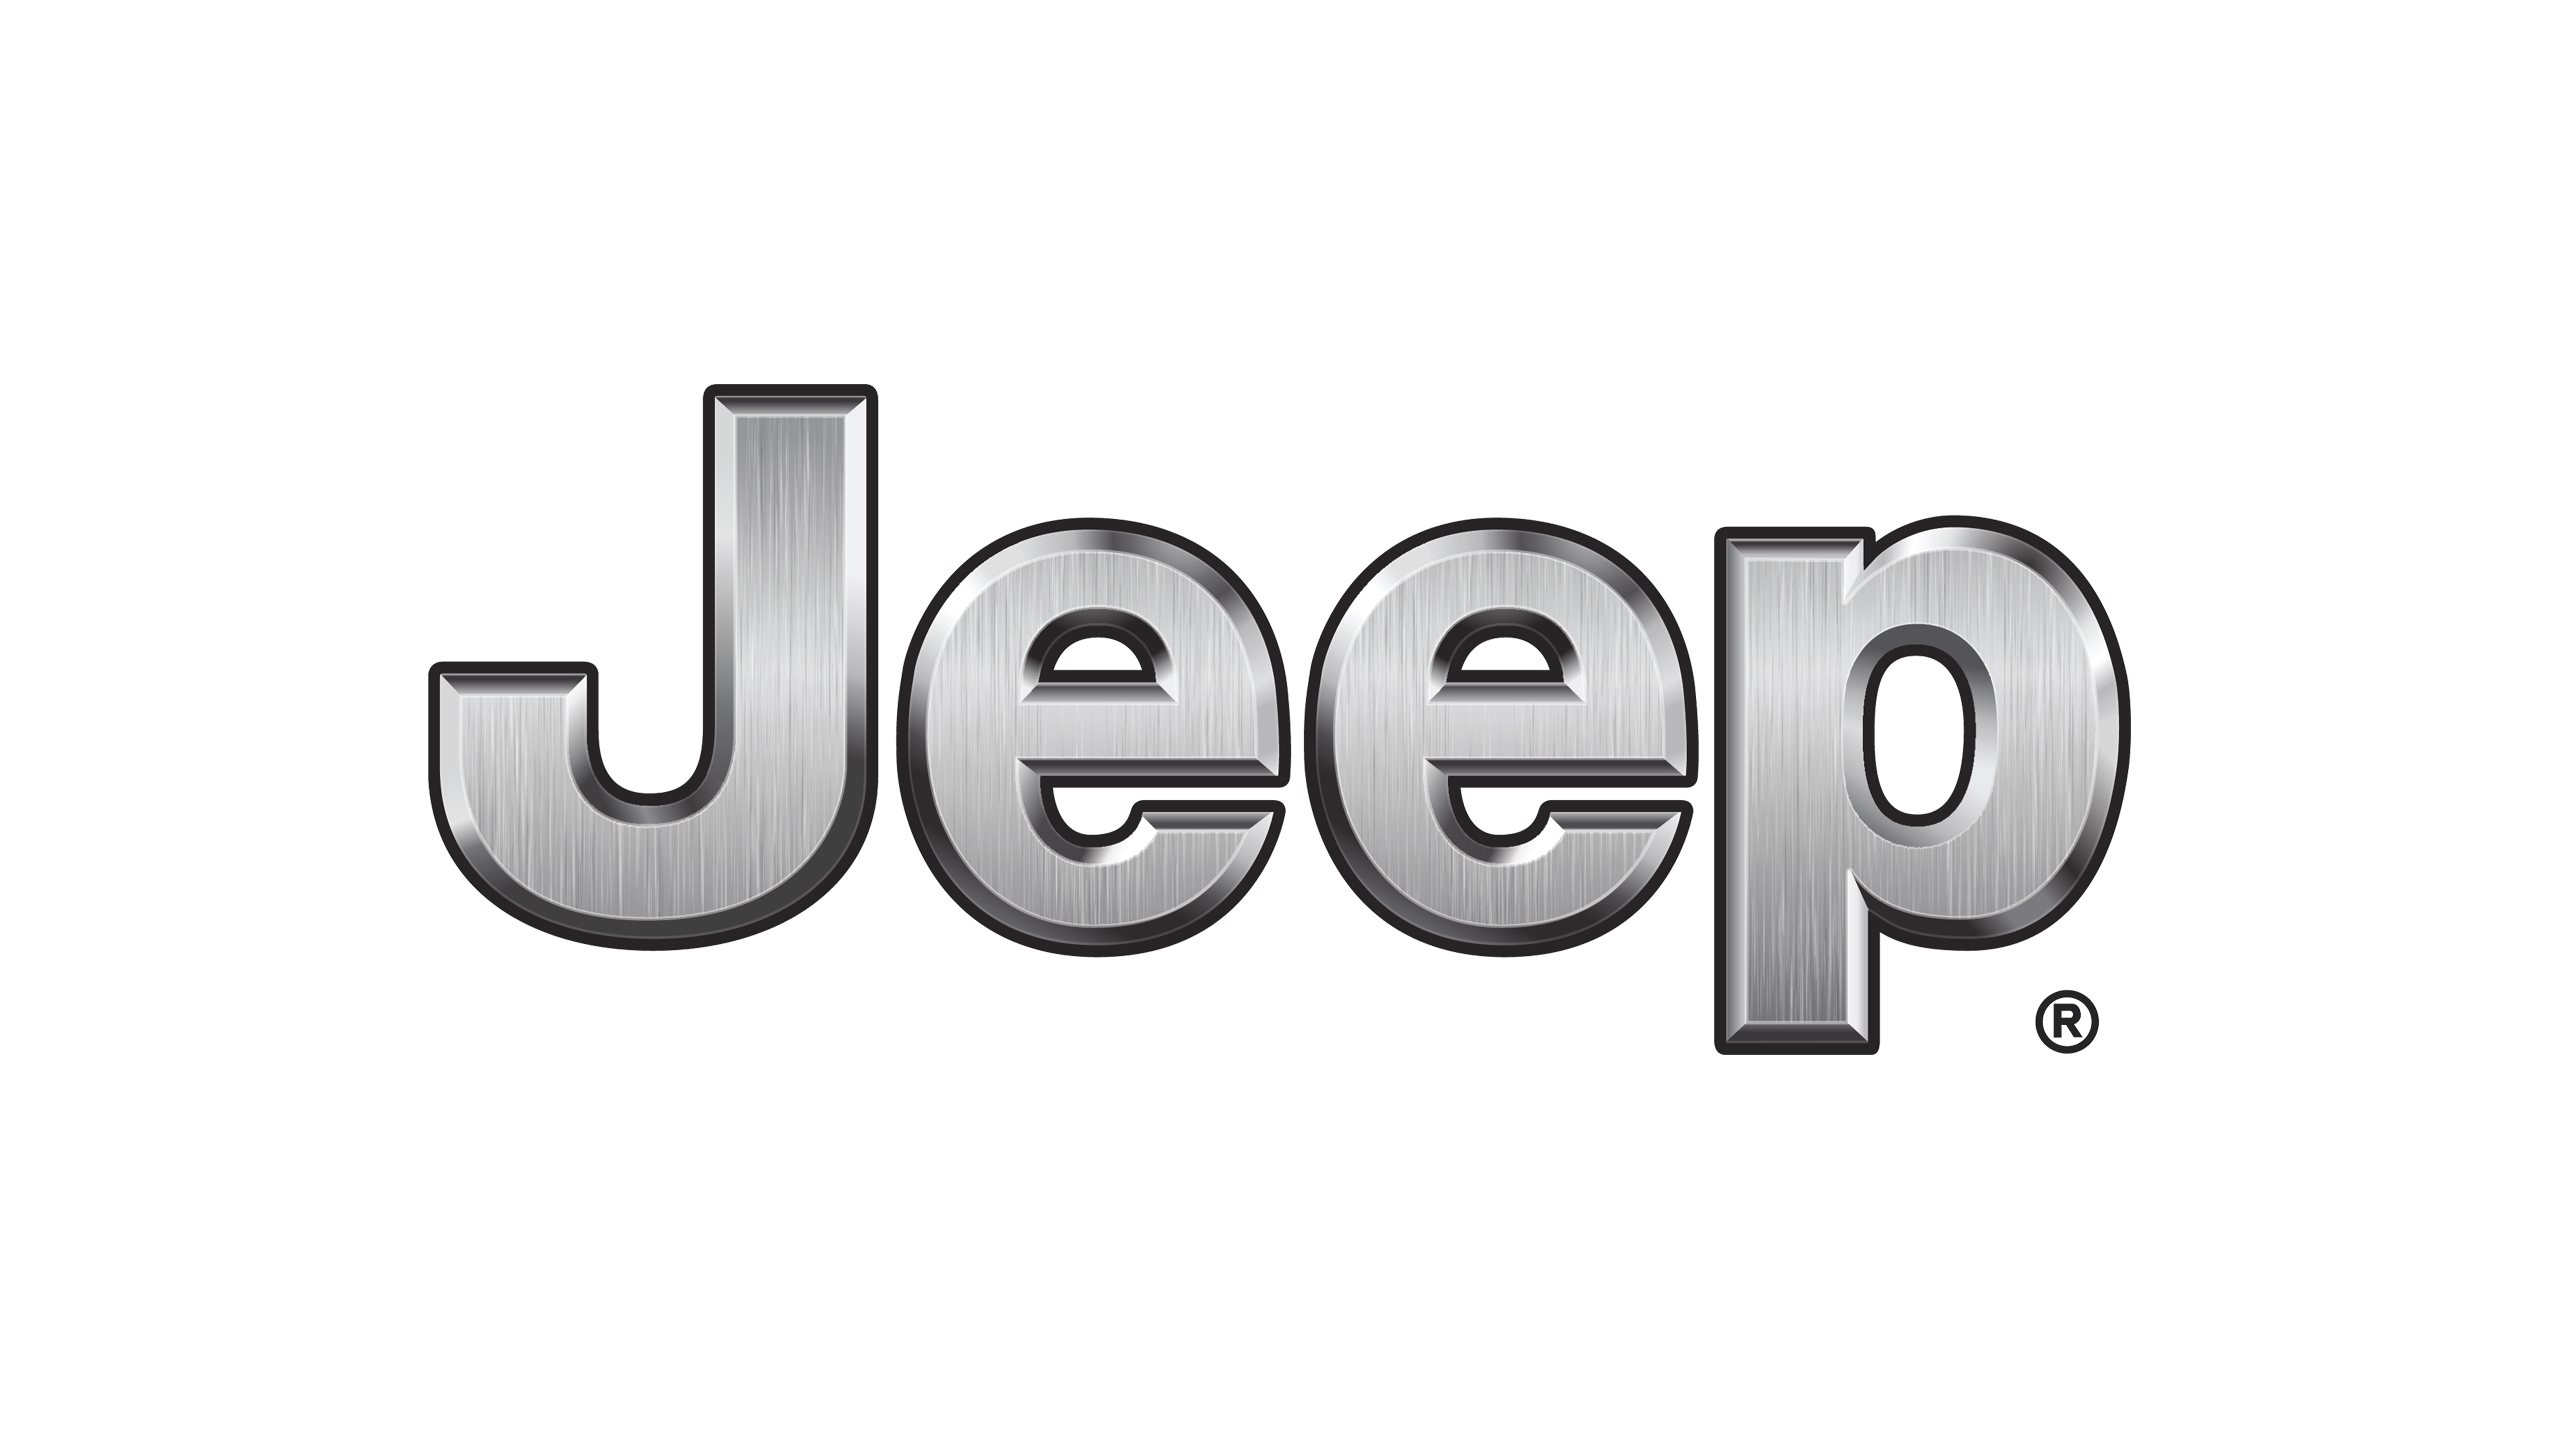 Jeep logo png. Hd meaning information carlogos